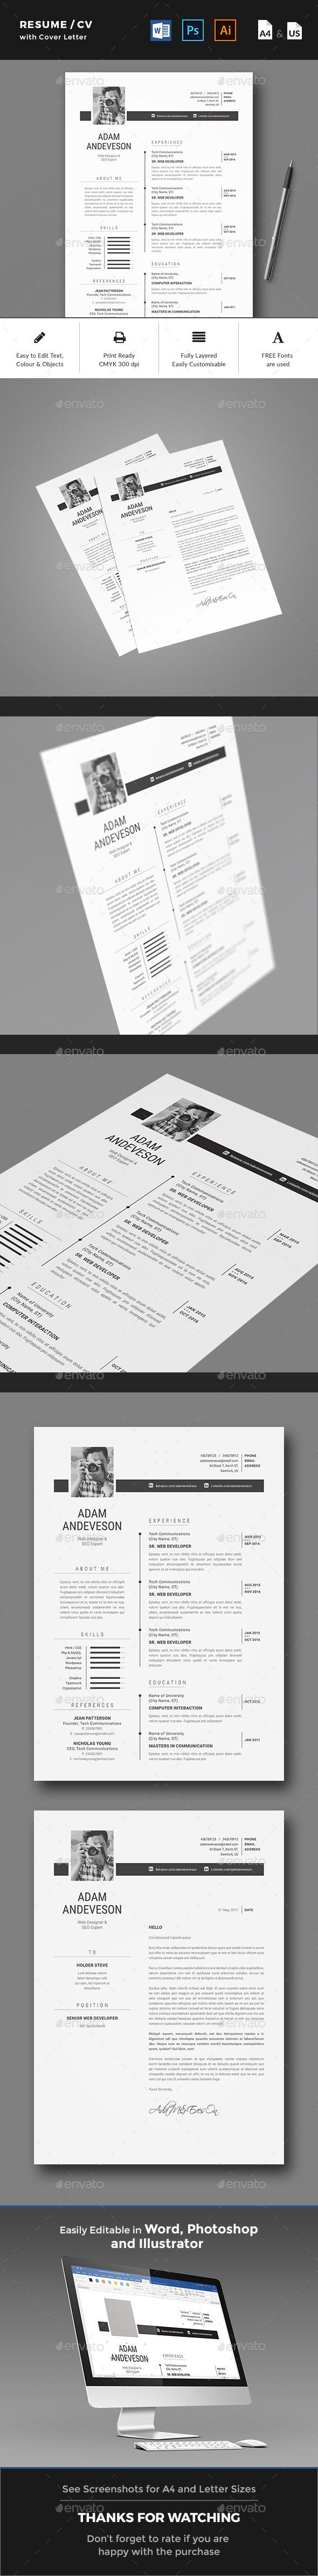 147 best Job images on Pinterest | Curriculum, Resume and Resume cv